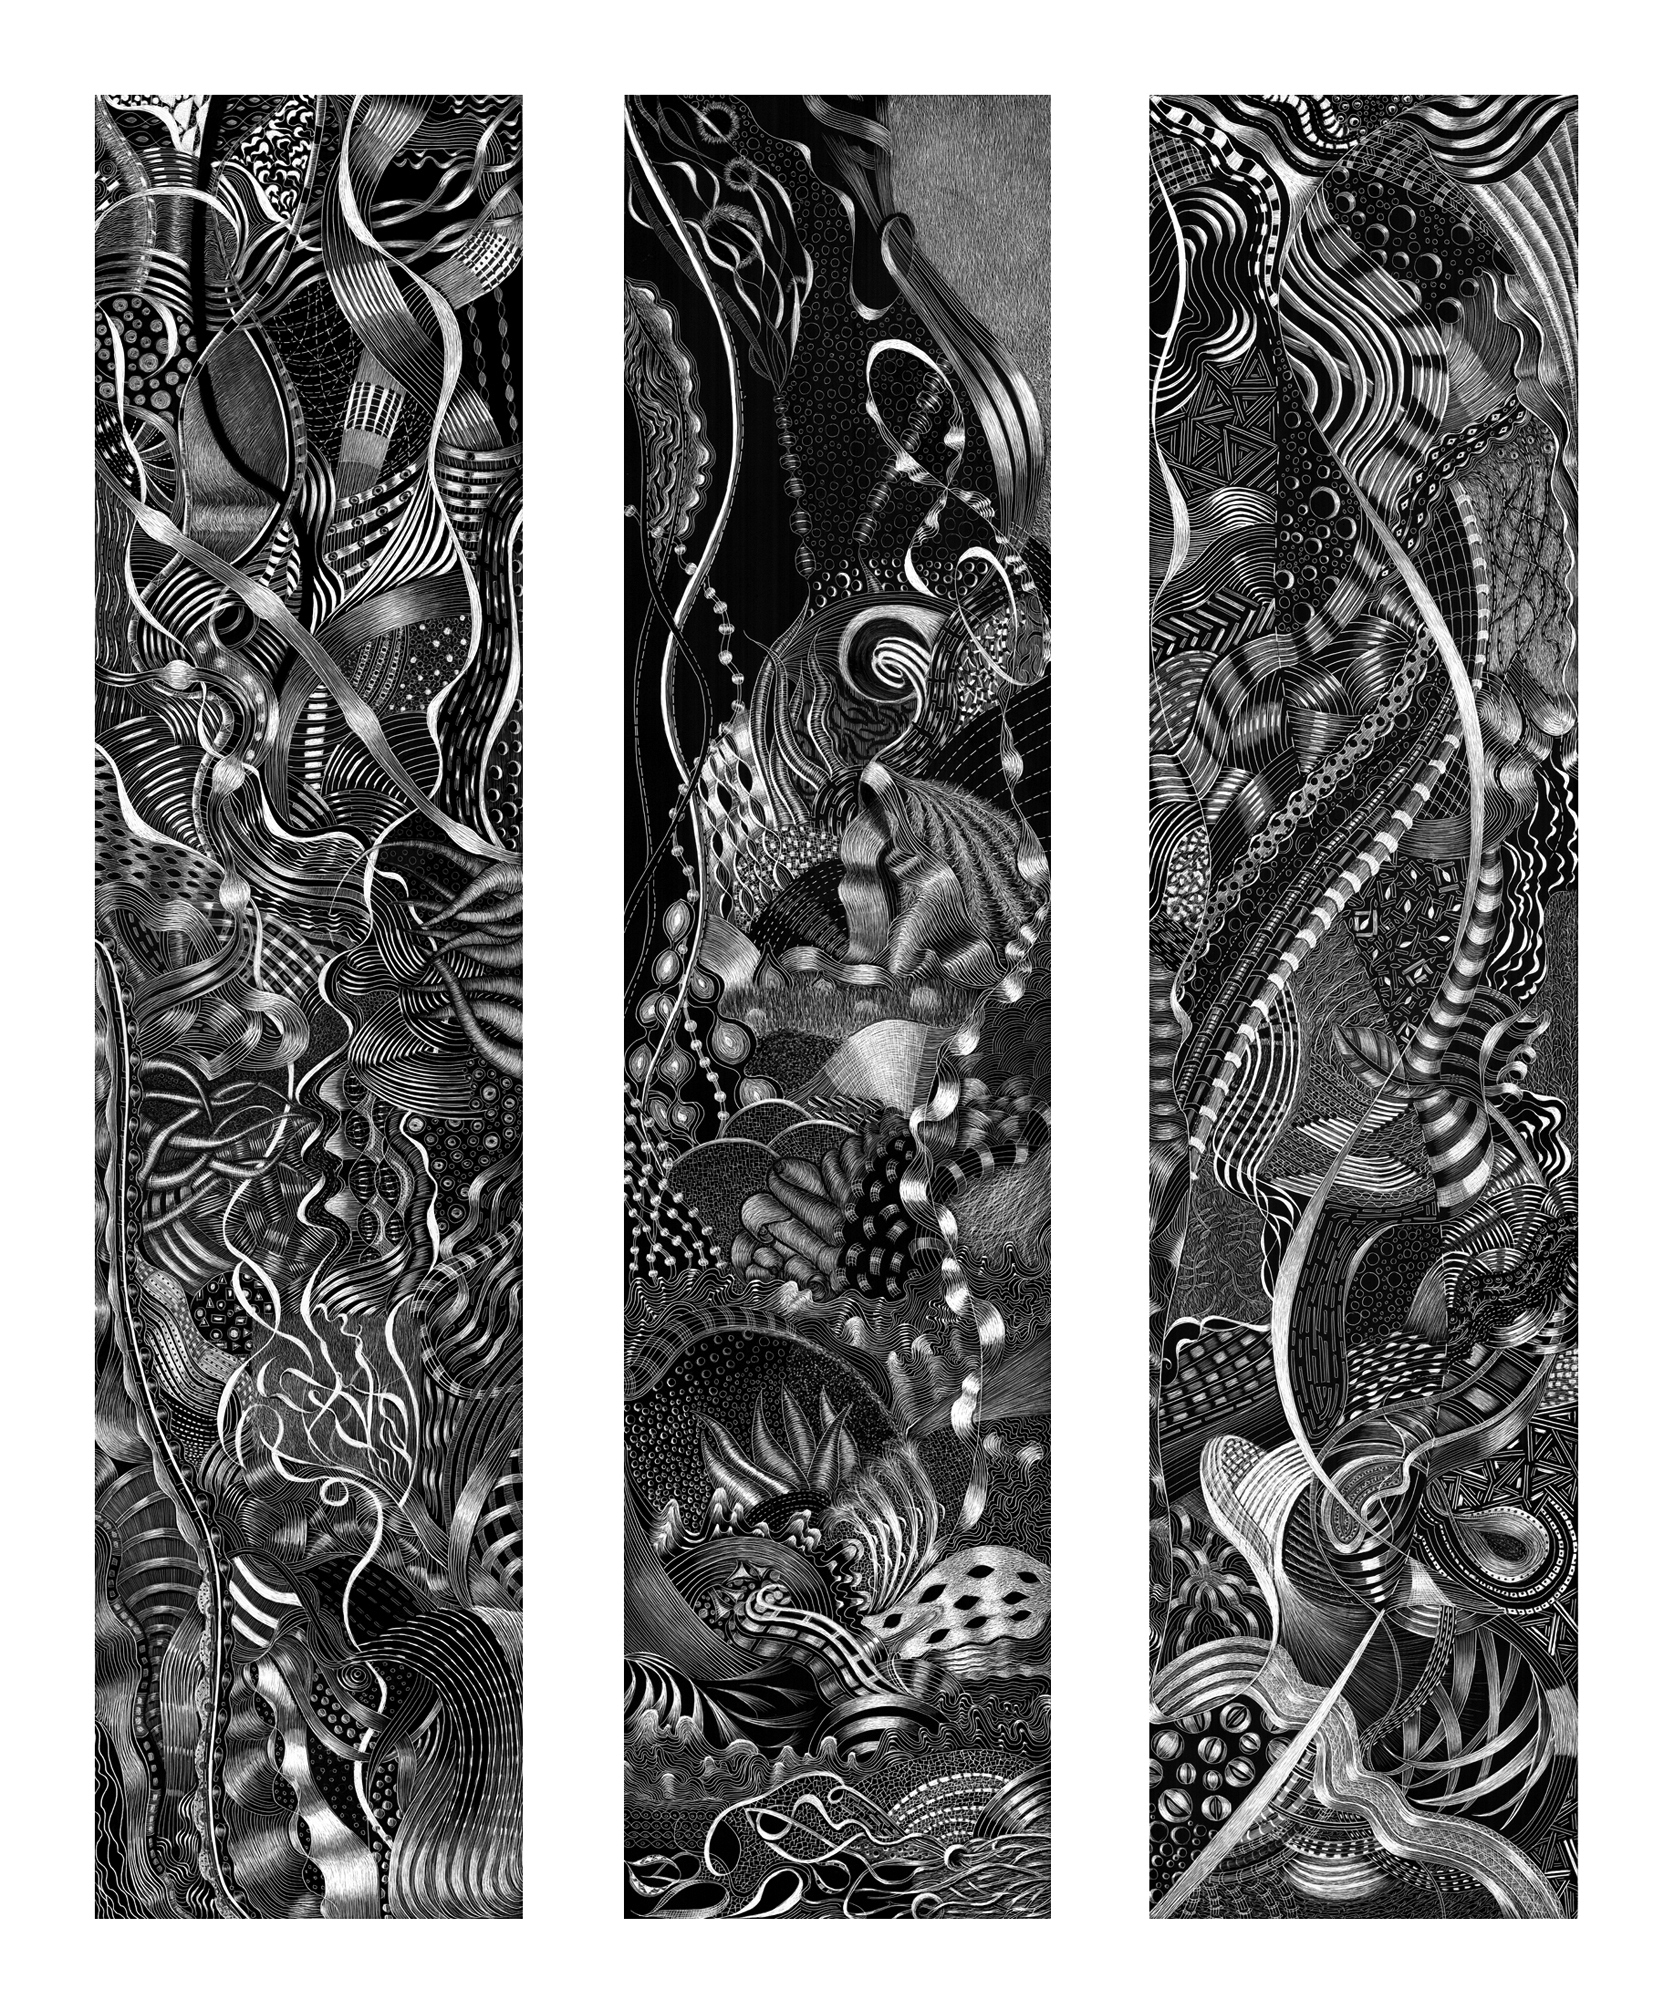 "SPONTANEOUS COMBUSTION 1, 2, 3 TRIP TYCH  #3100 Black Scratchboard Individually Framed: 8"" x 24"" x 3 $4500.00 2016 Studio"